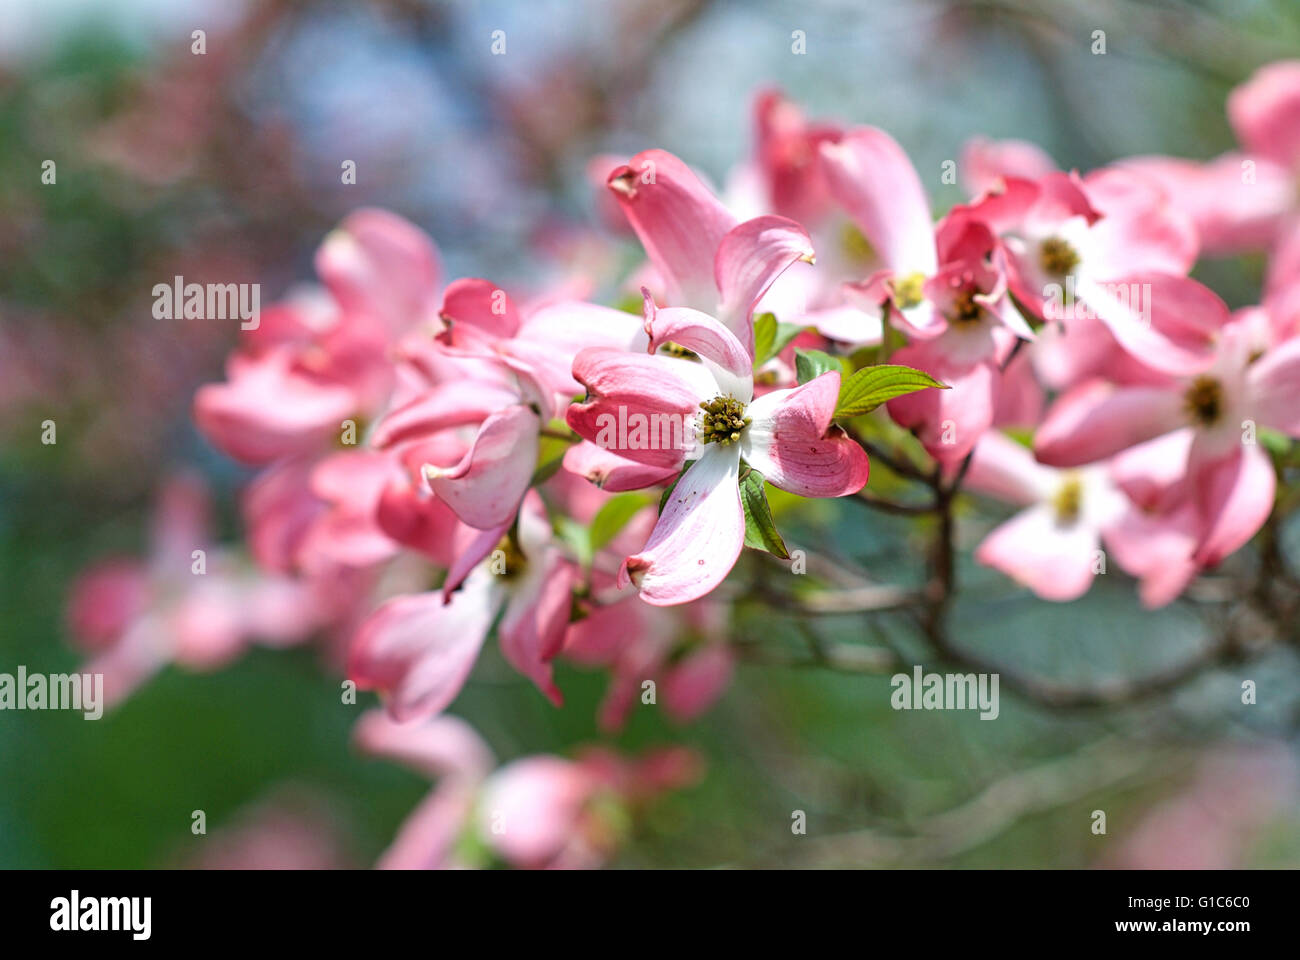 Close-up image of pink blossoms on an American Dogwood tree in Spring in Virginia, USA. Stock Photo